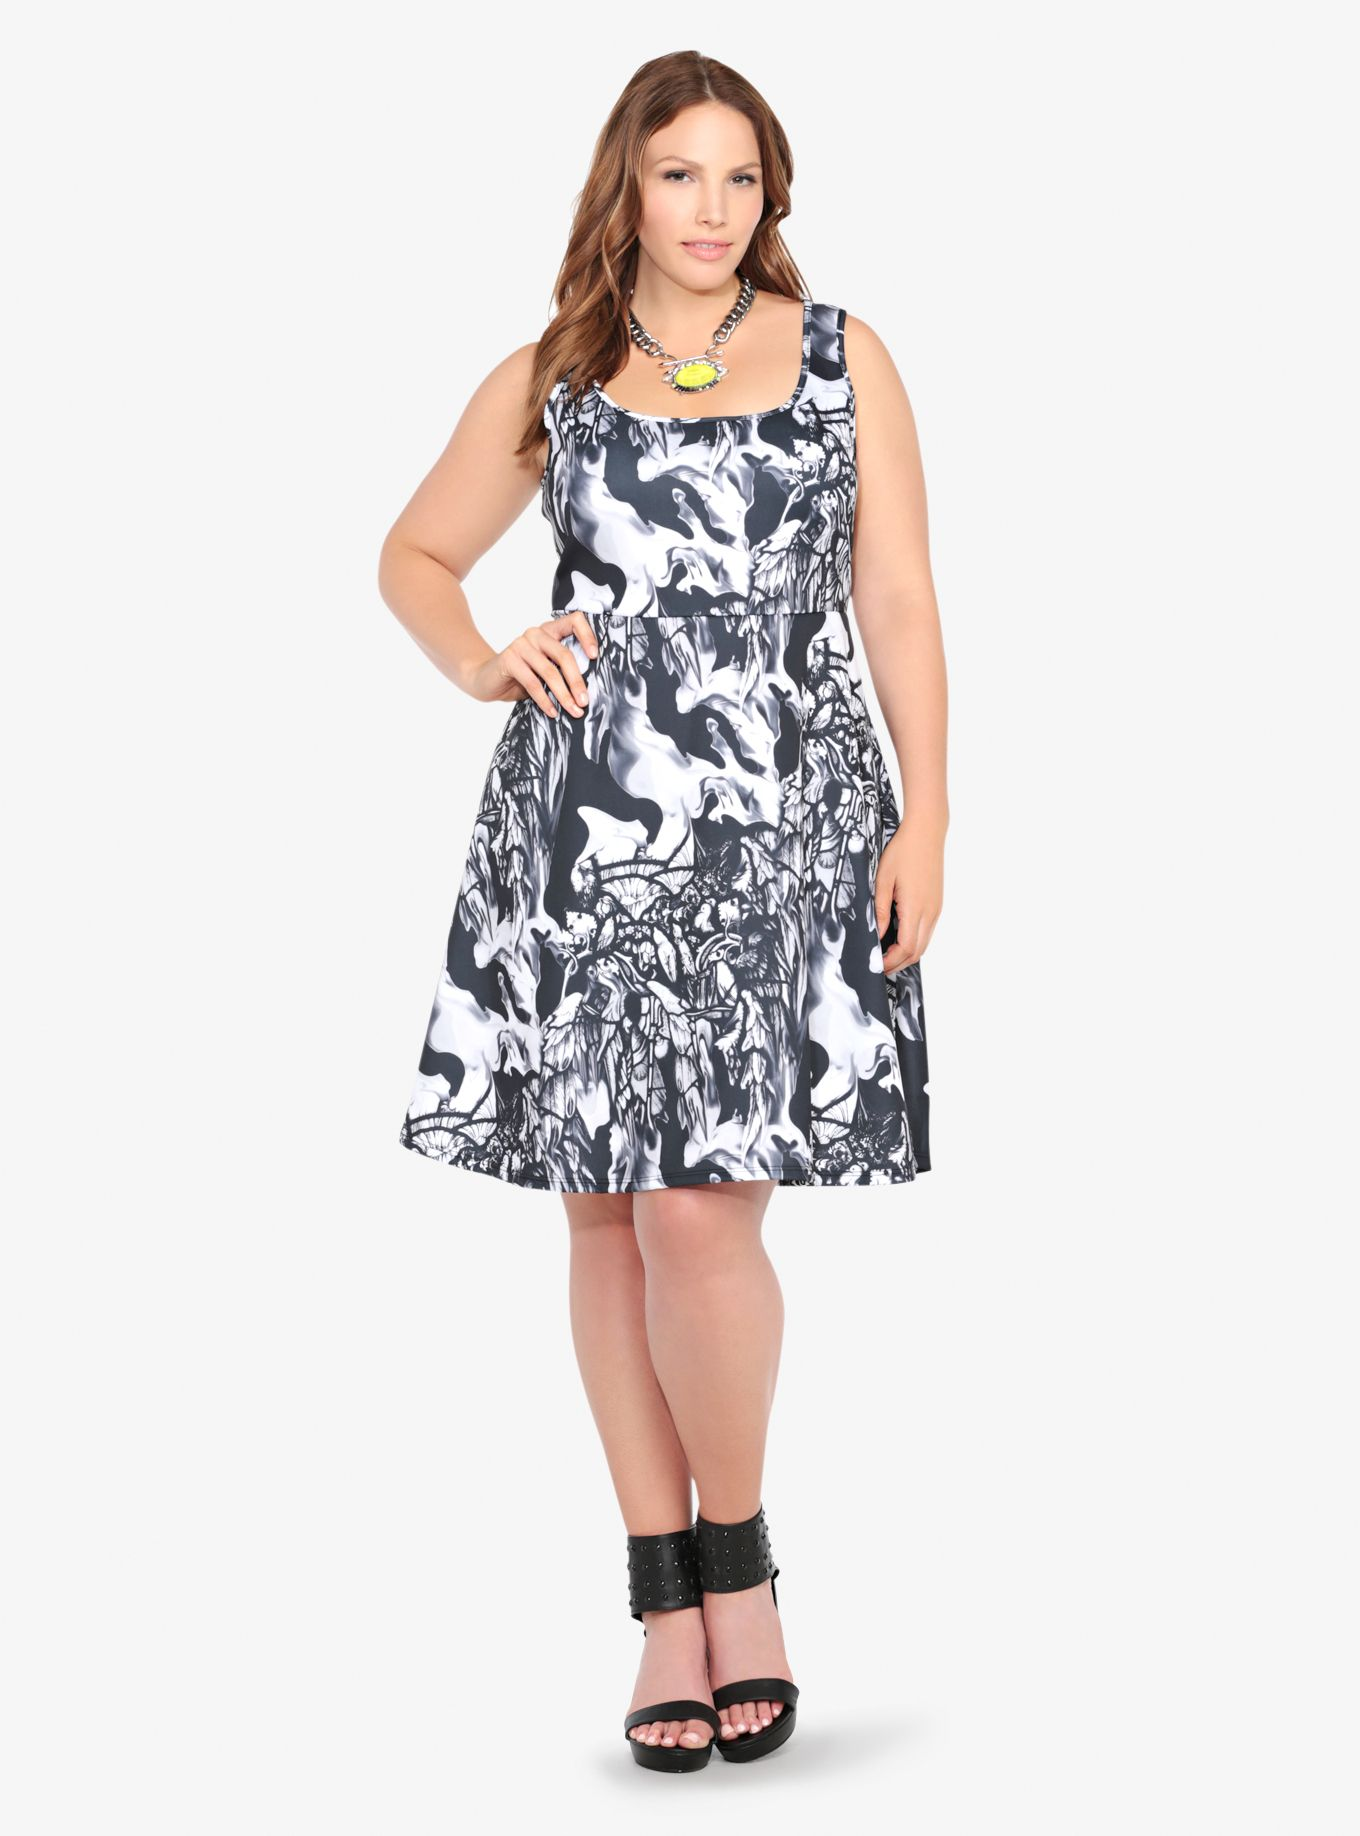 Amazing in our abstract print outfits pinterest dresses